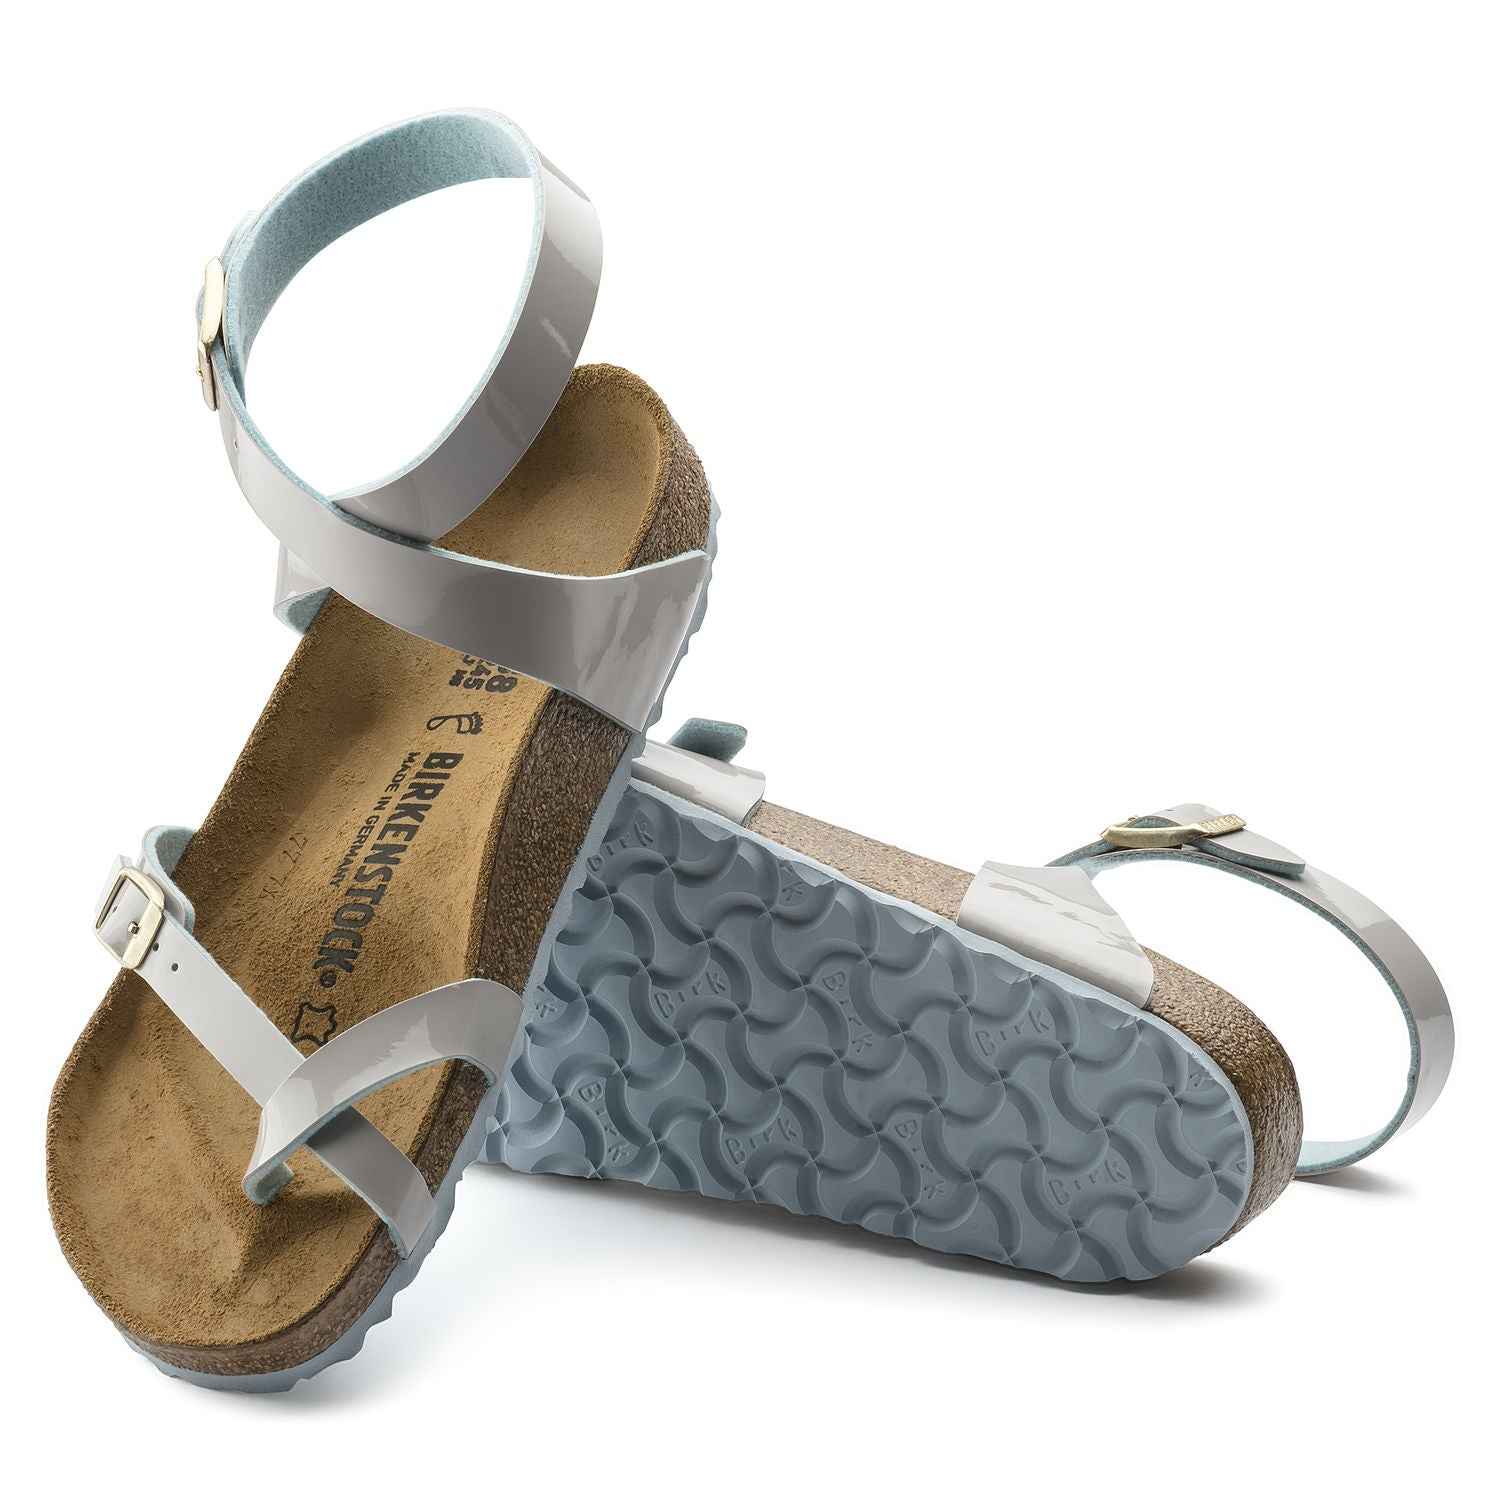 Sandalia Yara Patent Two Tone Light Gray